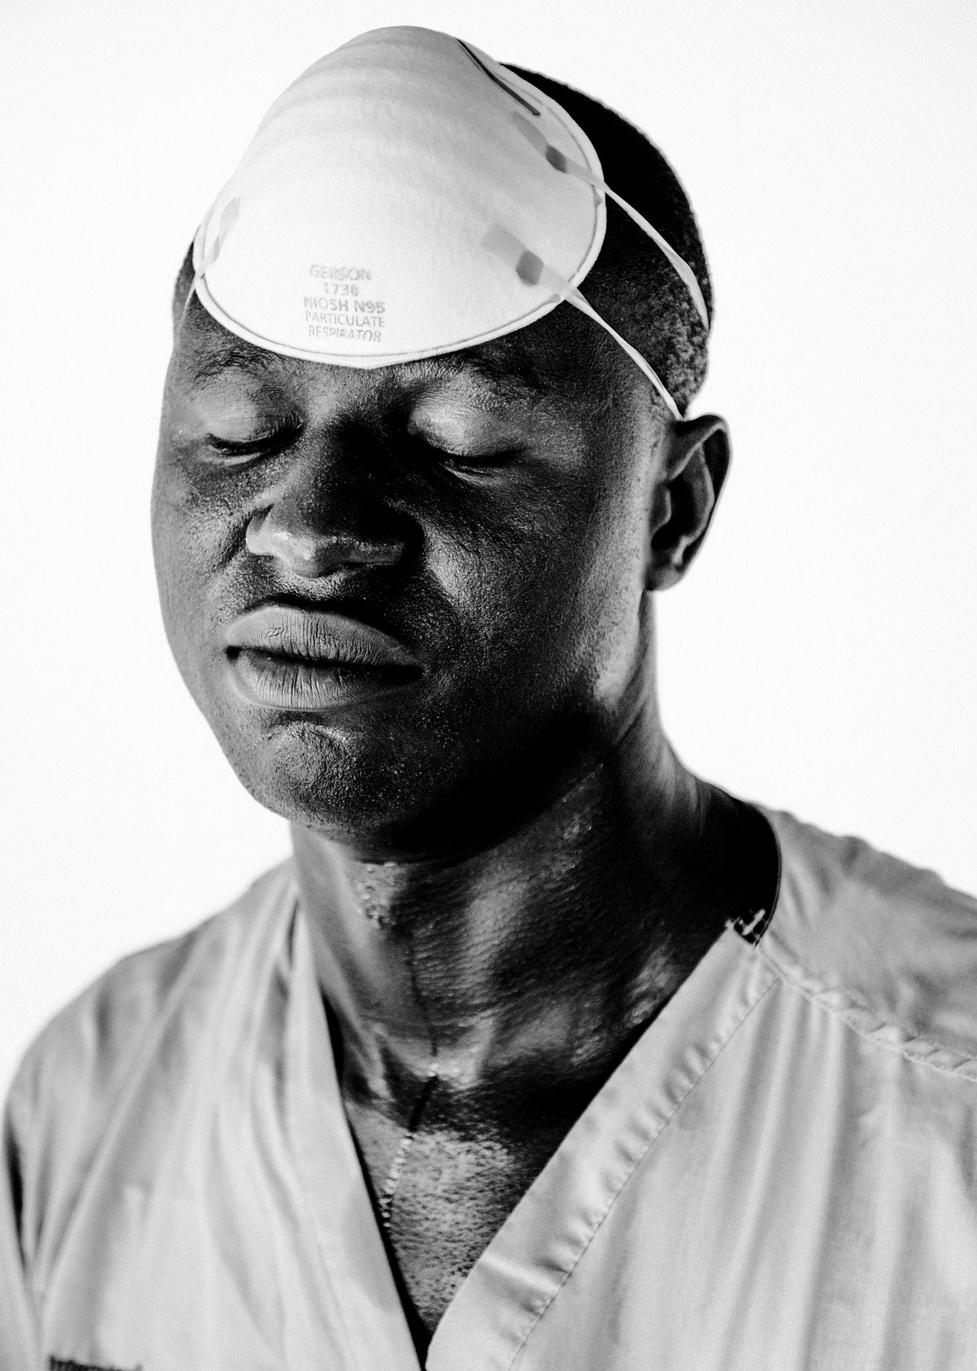 J. Sam T. G. Siakor, 30, water, sanitation and hygiene supervisor. October 2014 © Daniel Berehulak for The New York Times